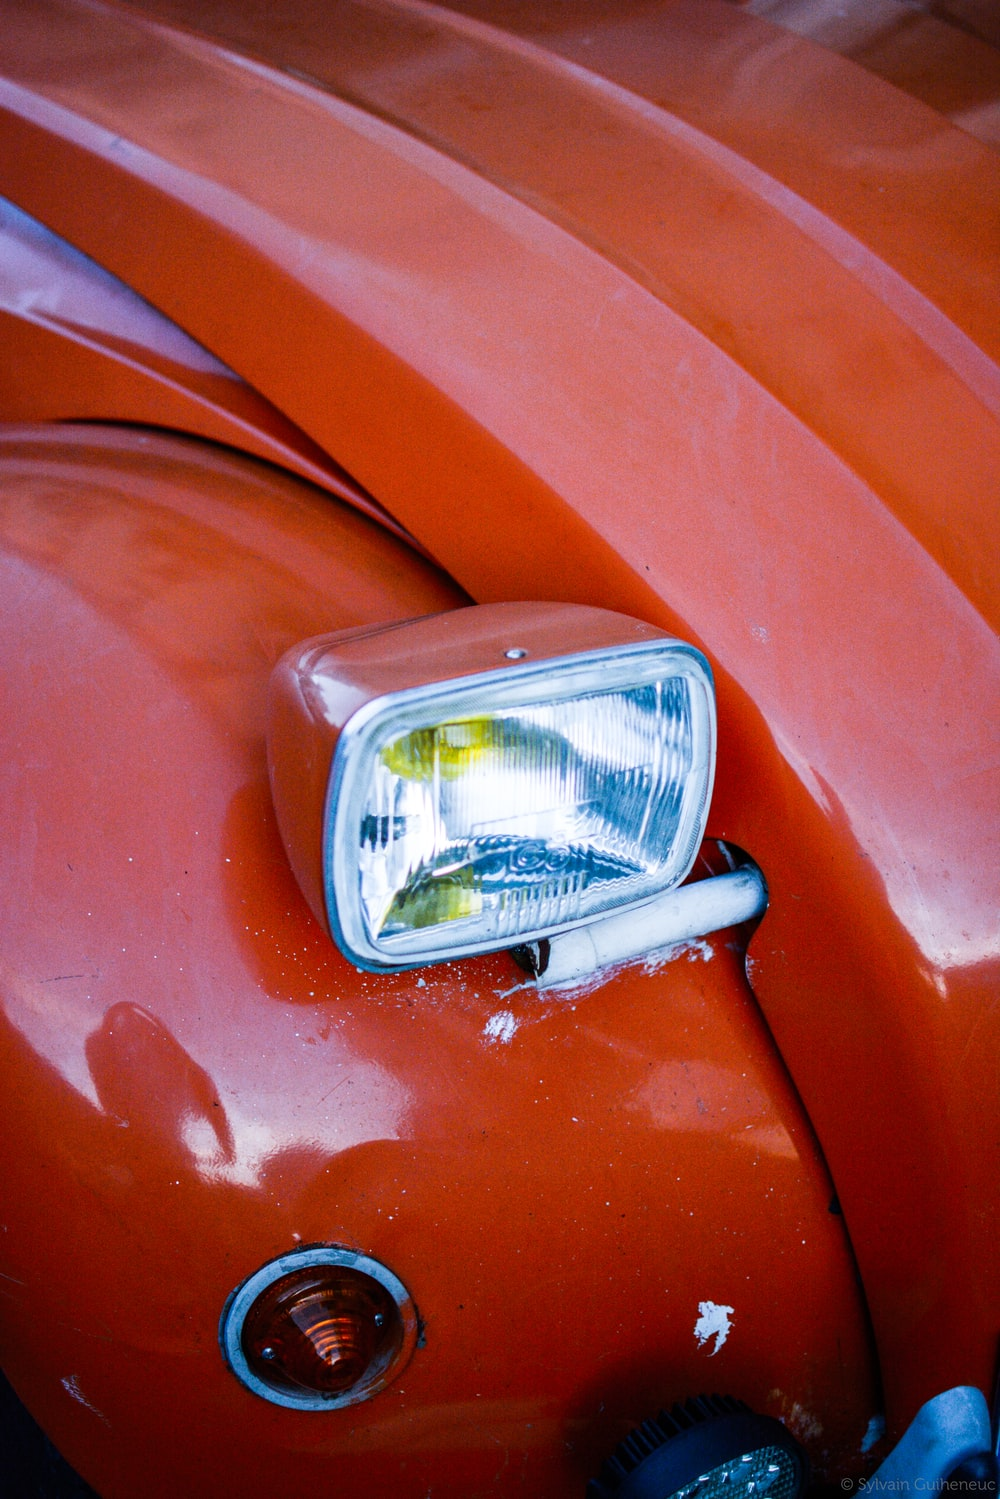 close view of red vehicle with headlight